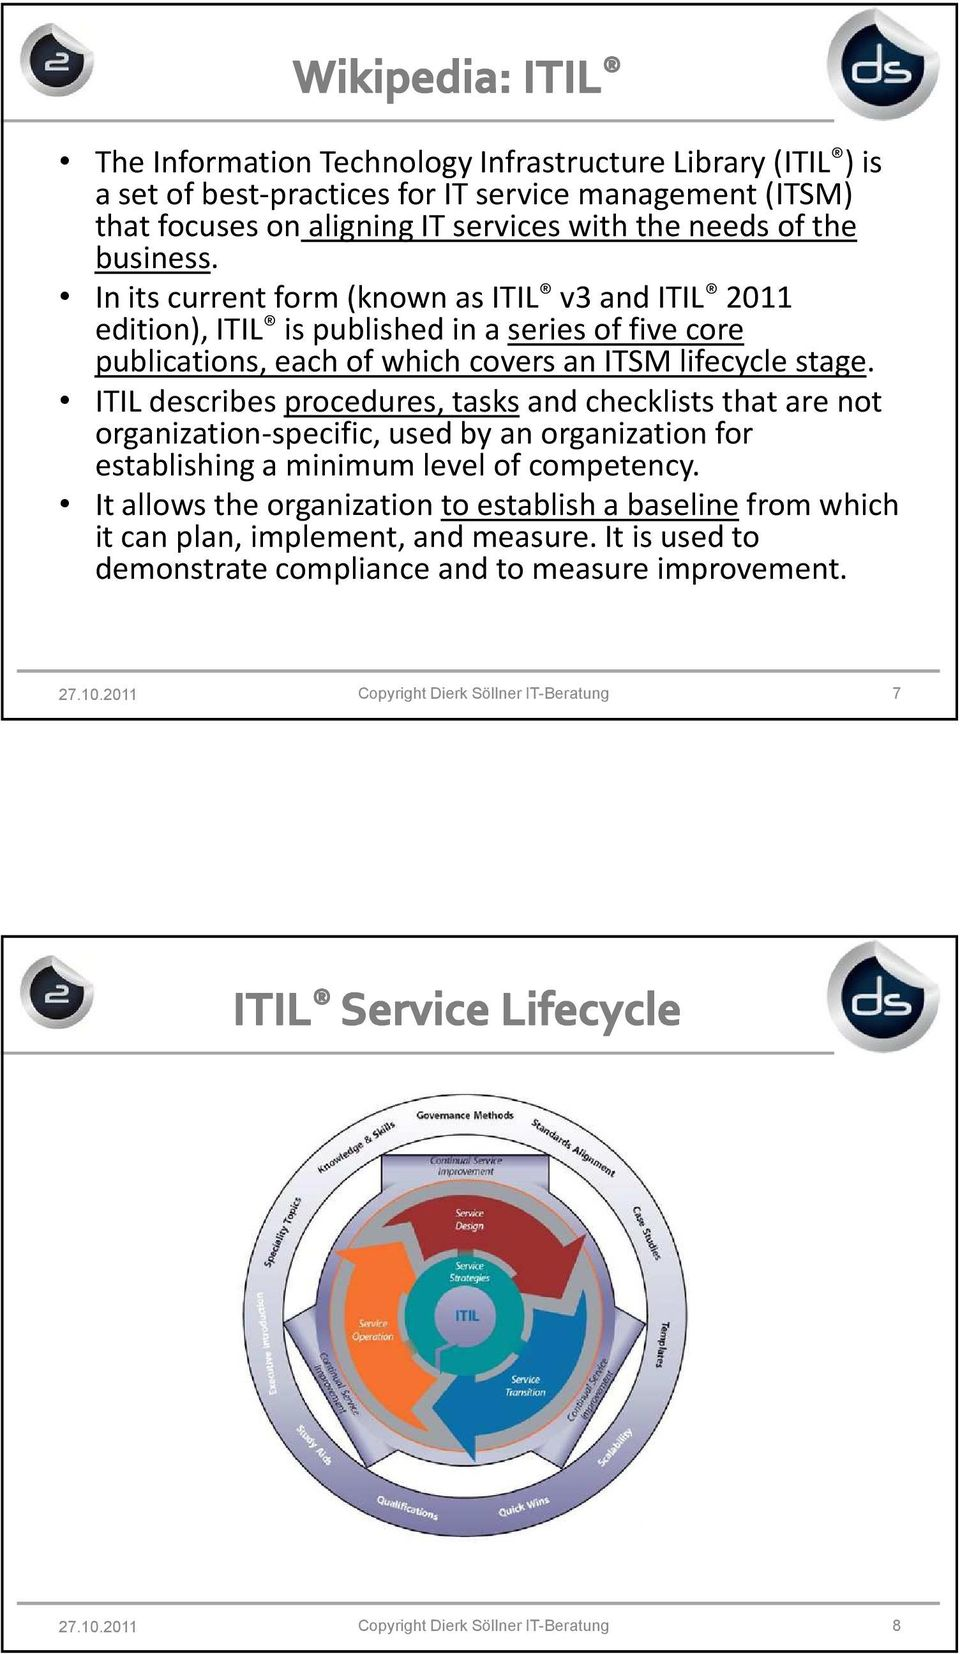 ITIL describes procedures, tasksand checklists that are not organization-specific, used by an organization for establishing a minimum level of competency.